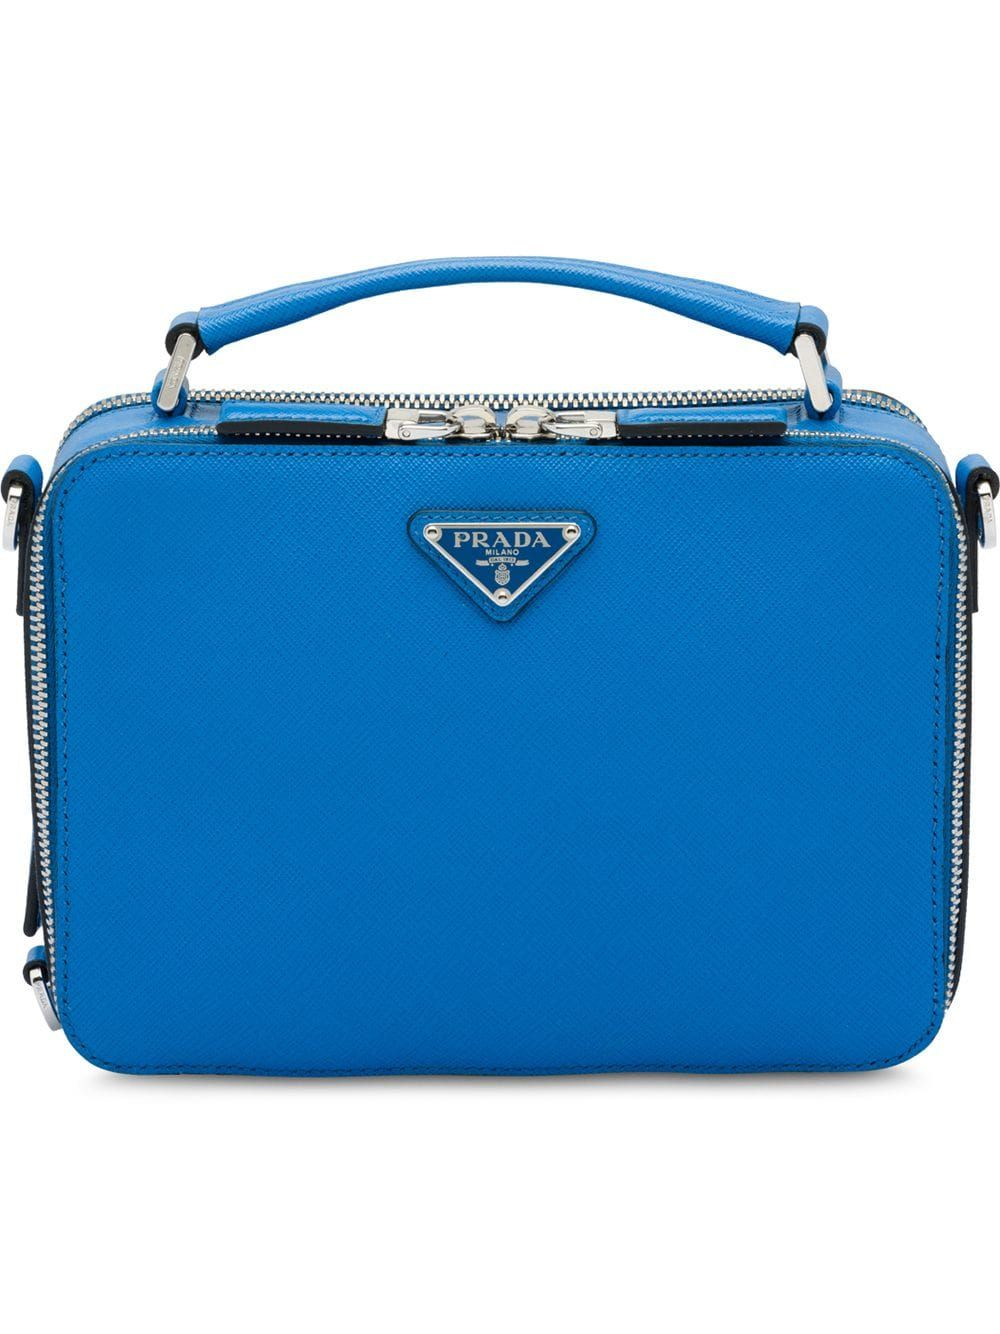 69122cfb0063 PRADA PRADA SAFFIANO LEATHER SHOULDER BAG - BLUE.  prada  bags  shoulder  bags  hand bags  leather